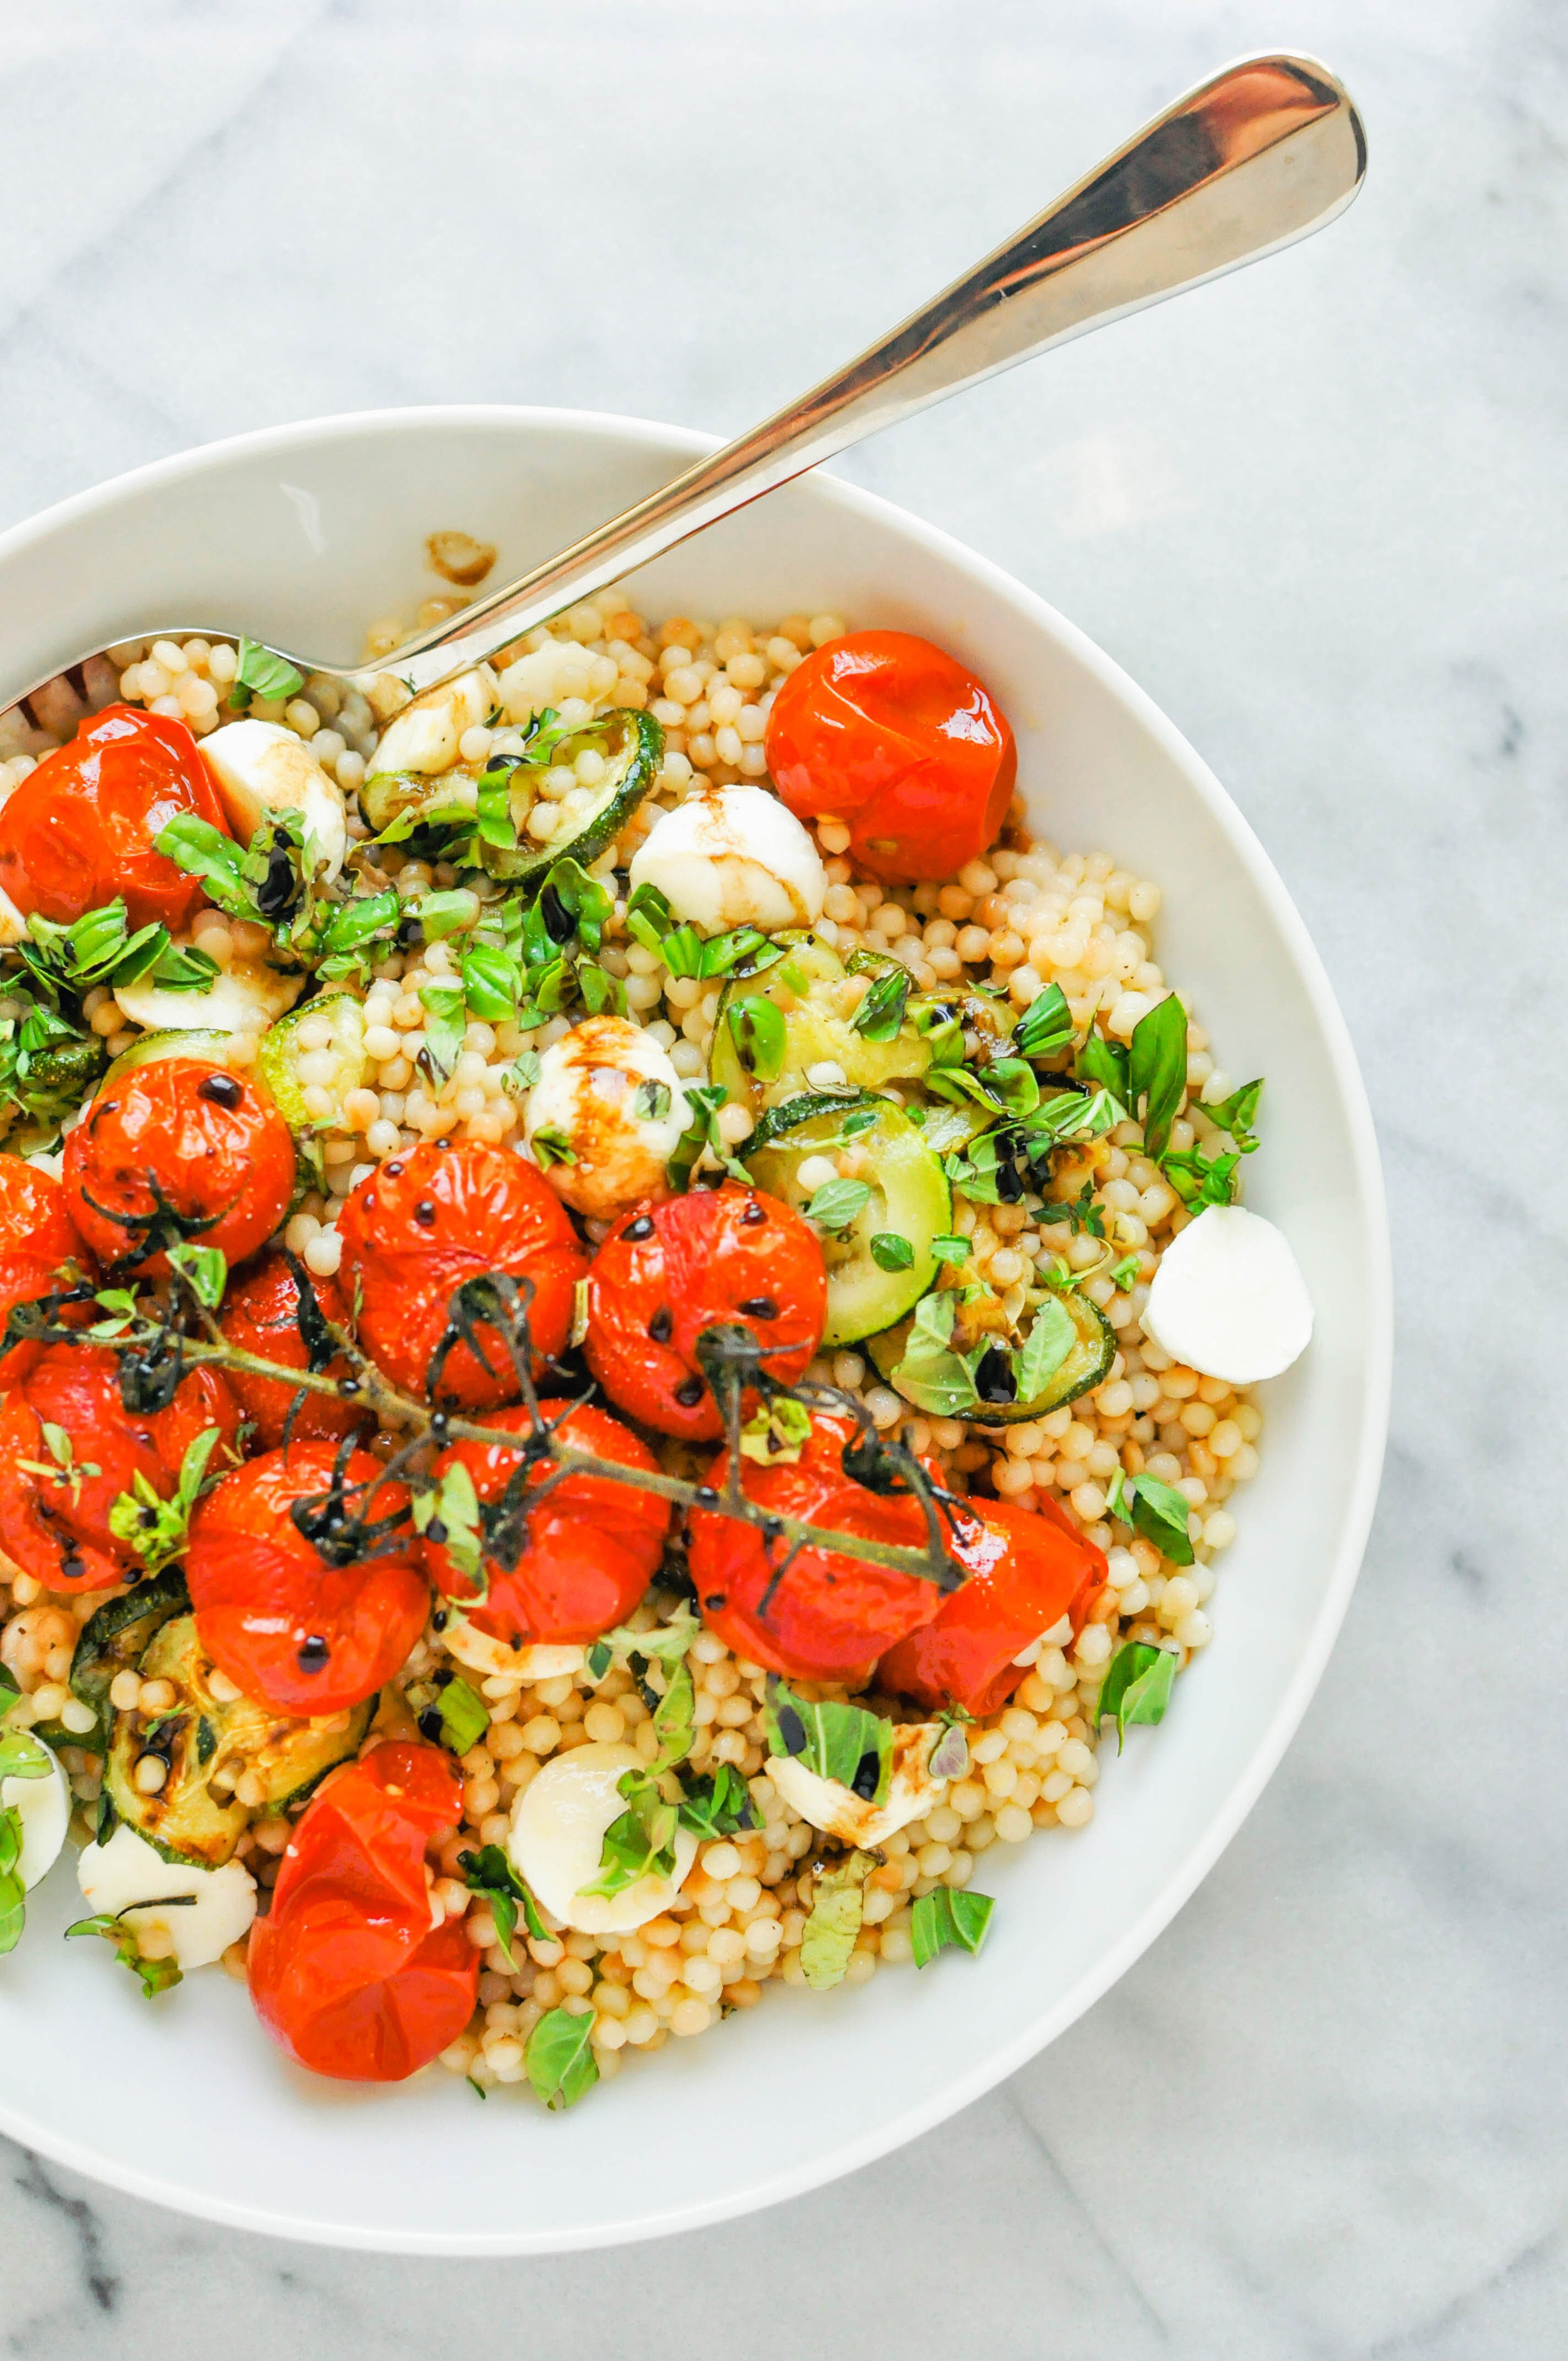 Israeli Couscous Salad with Zucchini, Mozzarella, & Tomatoes - This Israeli couscous salad with zucchini, mozzarella, and tomatoes is hearty and full of bright flavors. It's a delicious side dish or lunch option.